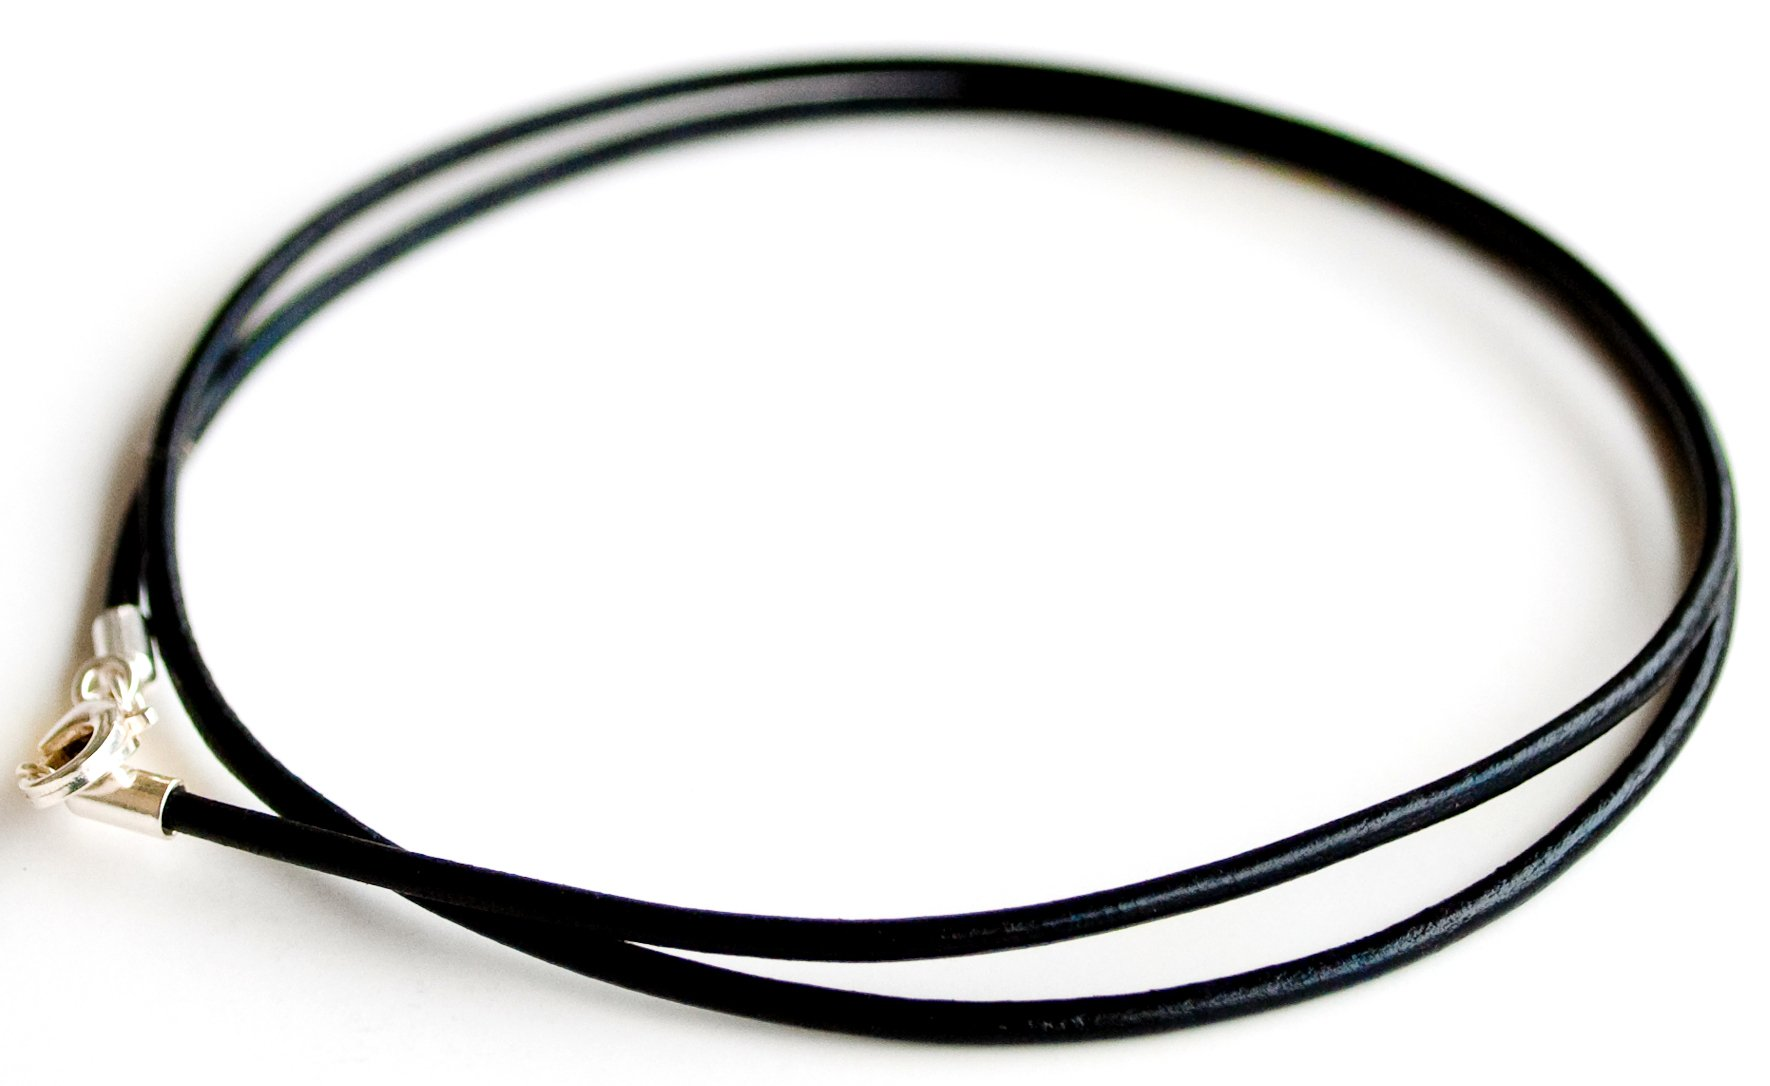 Black Genuine Greek Leather Cord Necklace, Sterling Silver Clasp, Multi-length Strap,